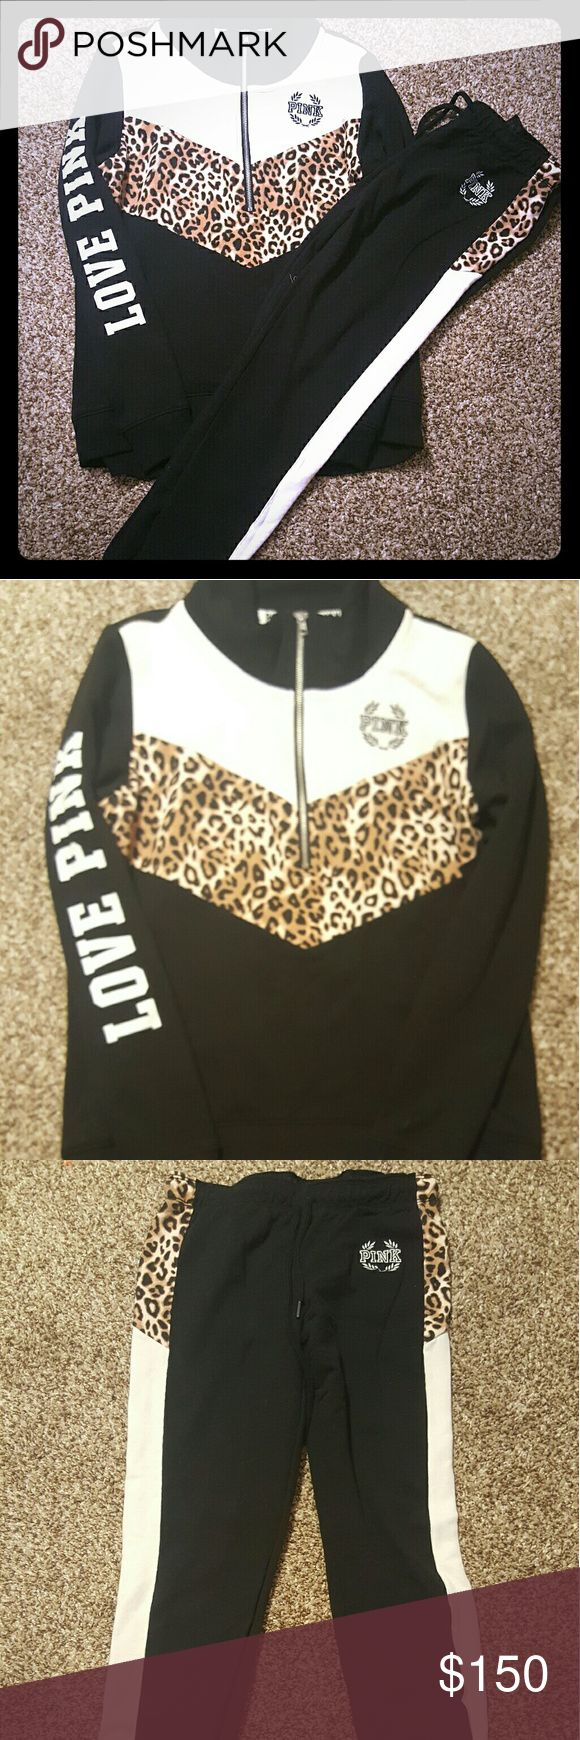 Beautiful Vs pink cheetah outfit Gorgeous cheetah outfit from Victoria secret pink.  Both size extra small. Great condition only worn a couple of times. Sweatshirt is a half zip fits more like a small and the sweatpants are skinnies cinched at the ankle and it ties at the waist . Fits more like a small. Cheetah print, black and white. PINK Victoria's Secret Other